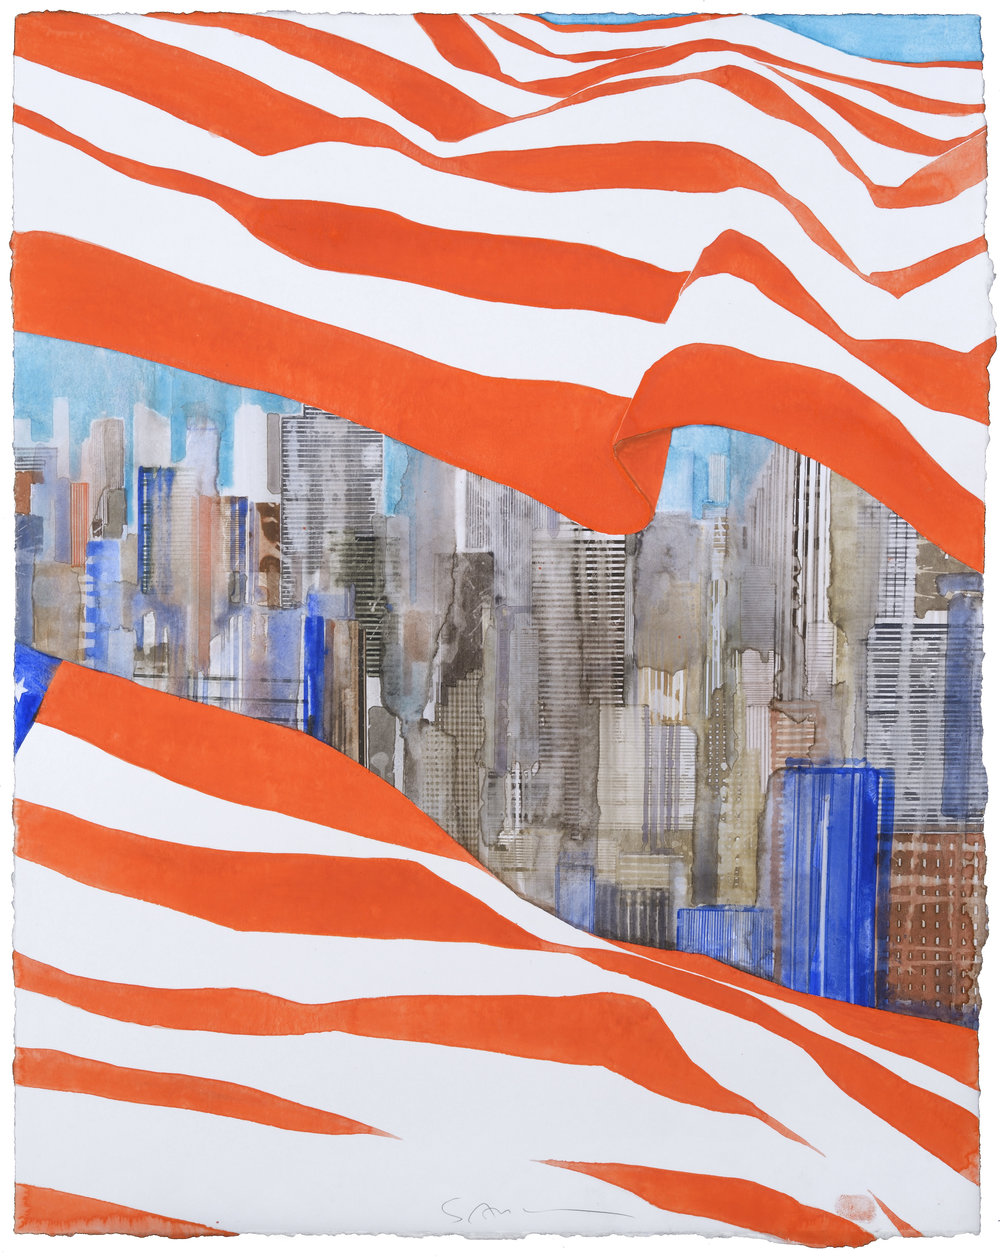 US Flag VIII, watercolor, 61 x 47 cm, 24 x 18.5 in, 2016